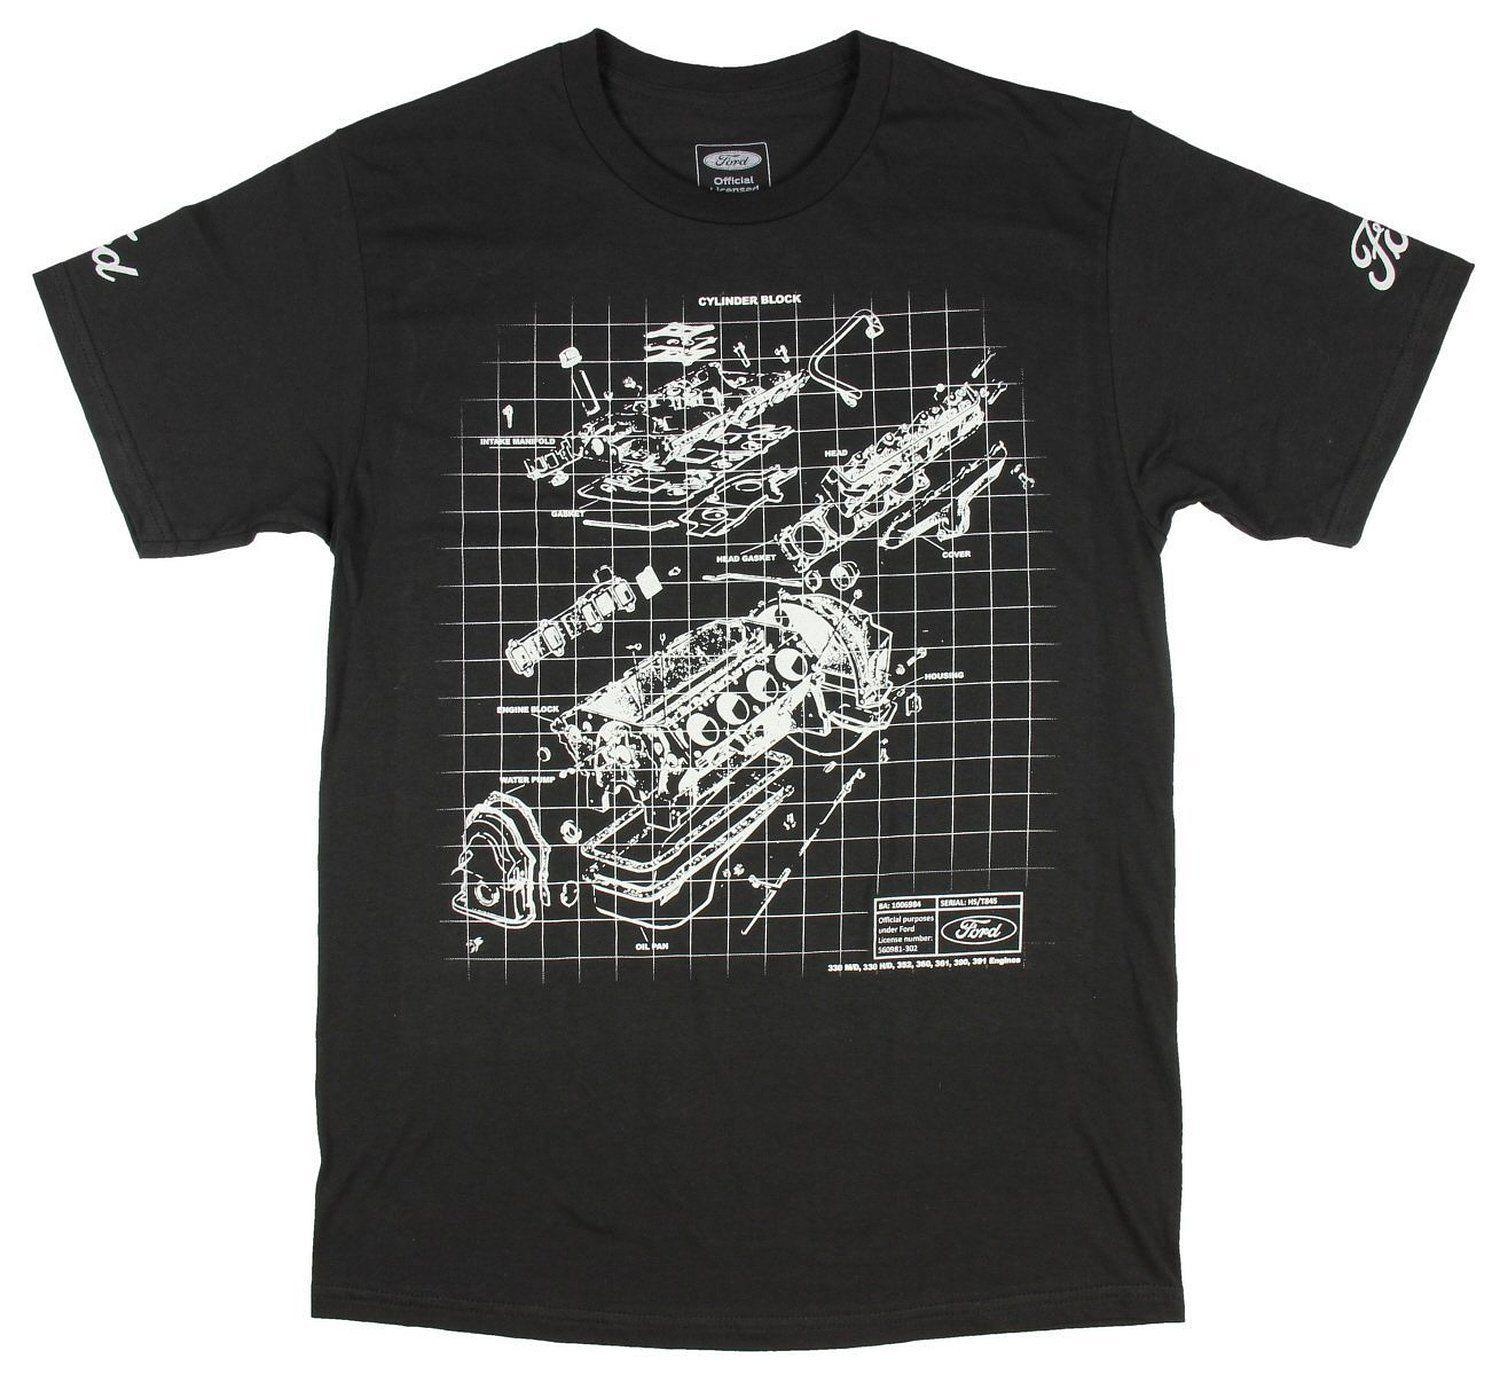 Ford Men's Engine Block Schematic Black T-Shirt New T Shirts Casual Brand Clothing Cotton